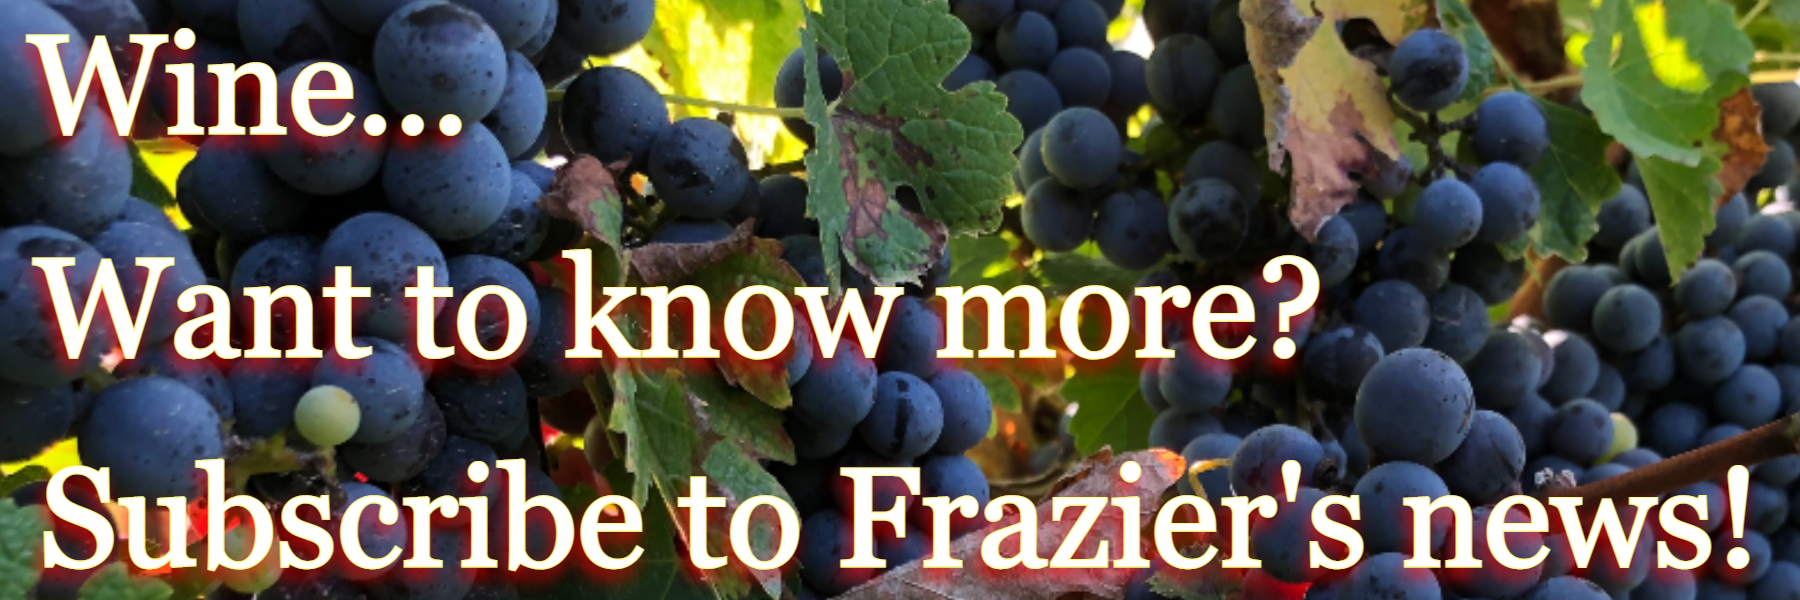 Subscribe to Frazier's news letter